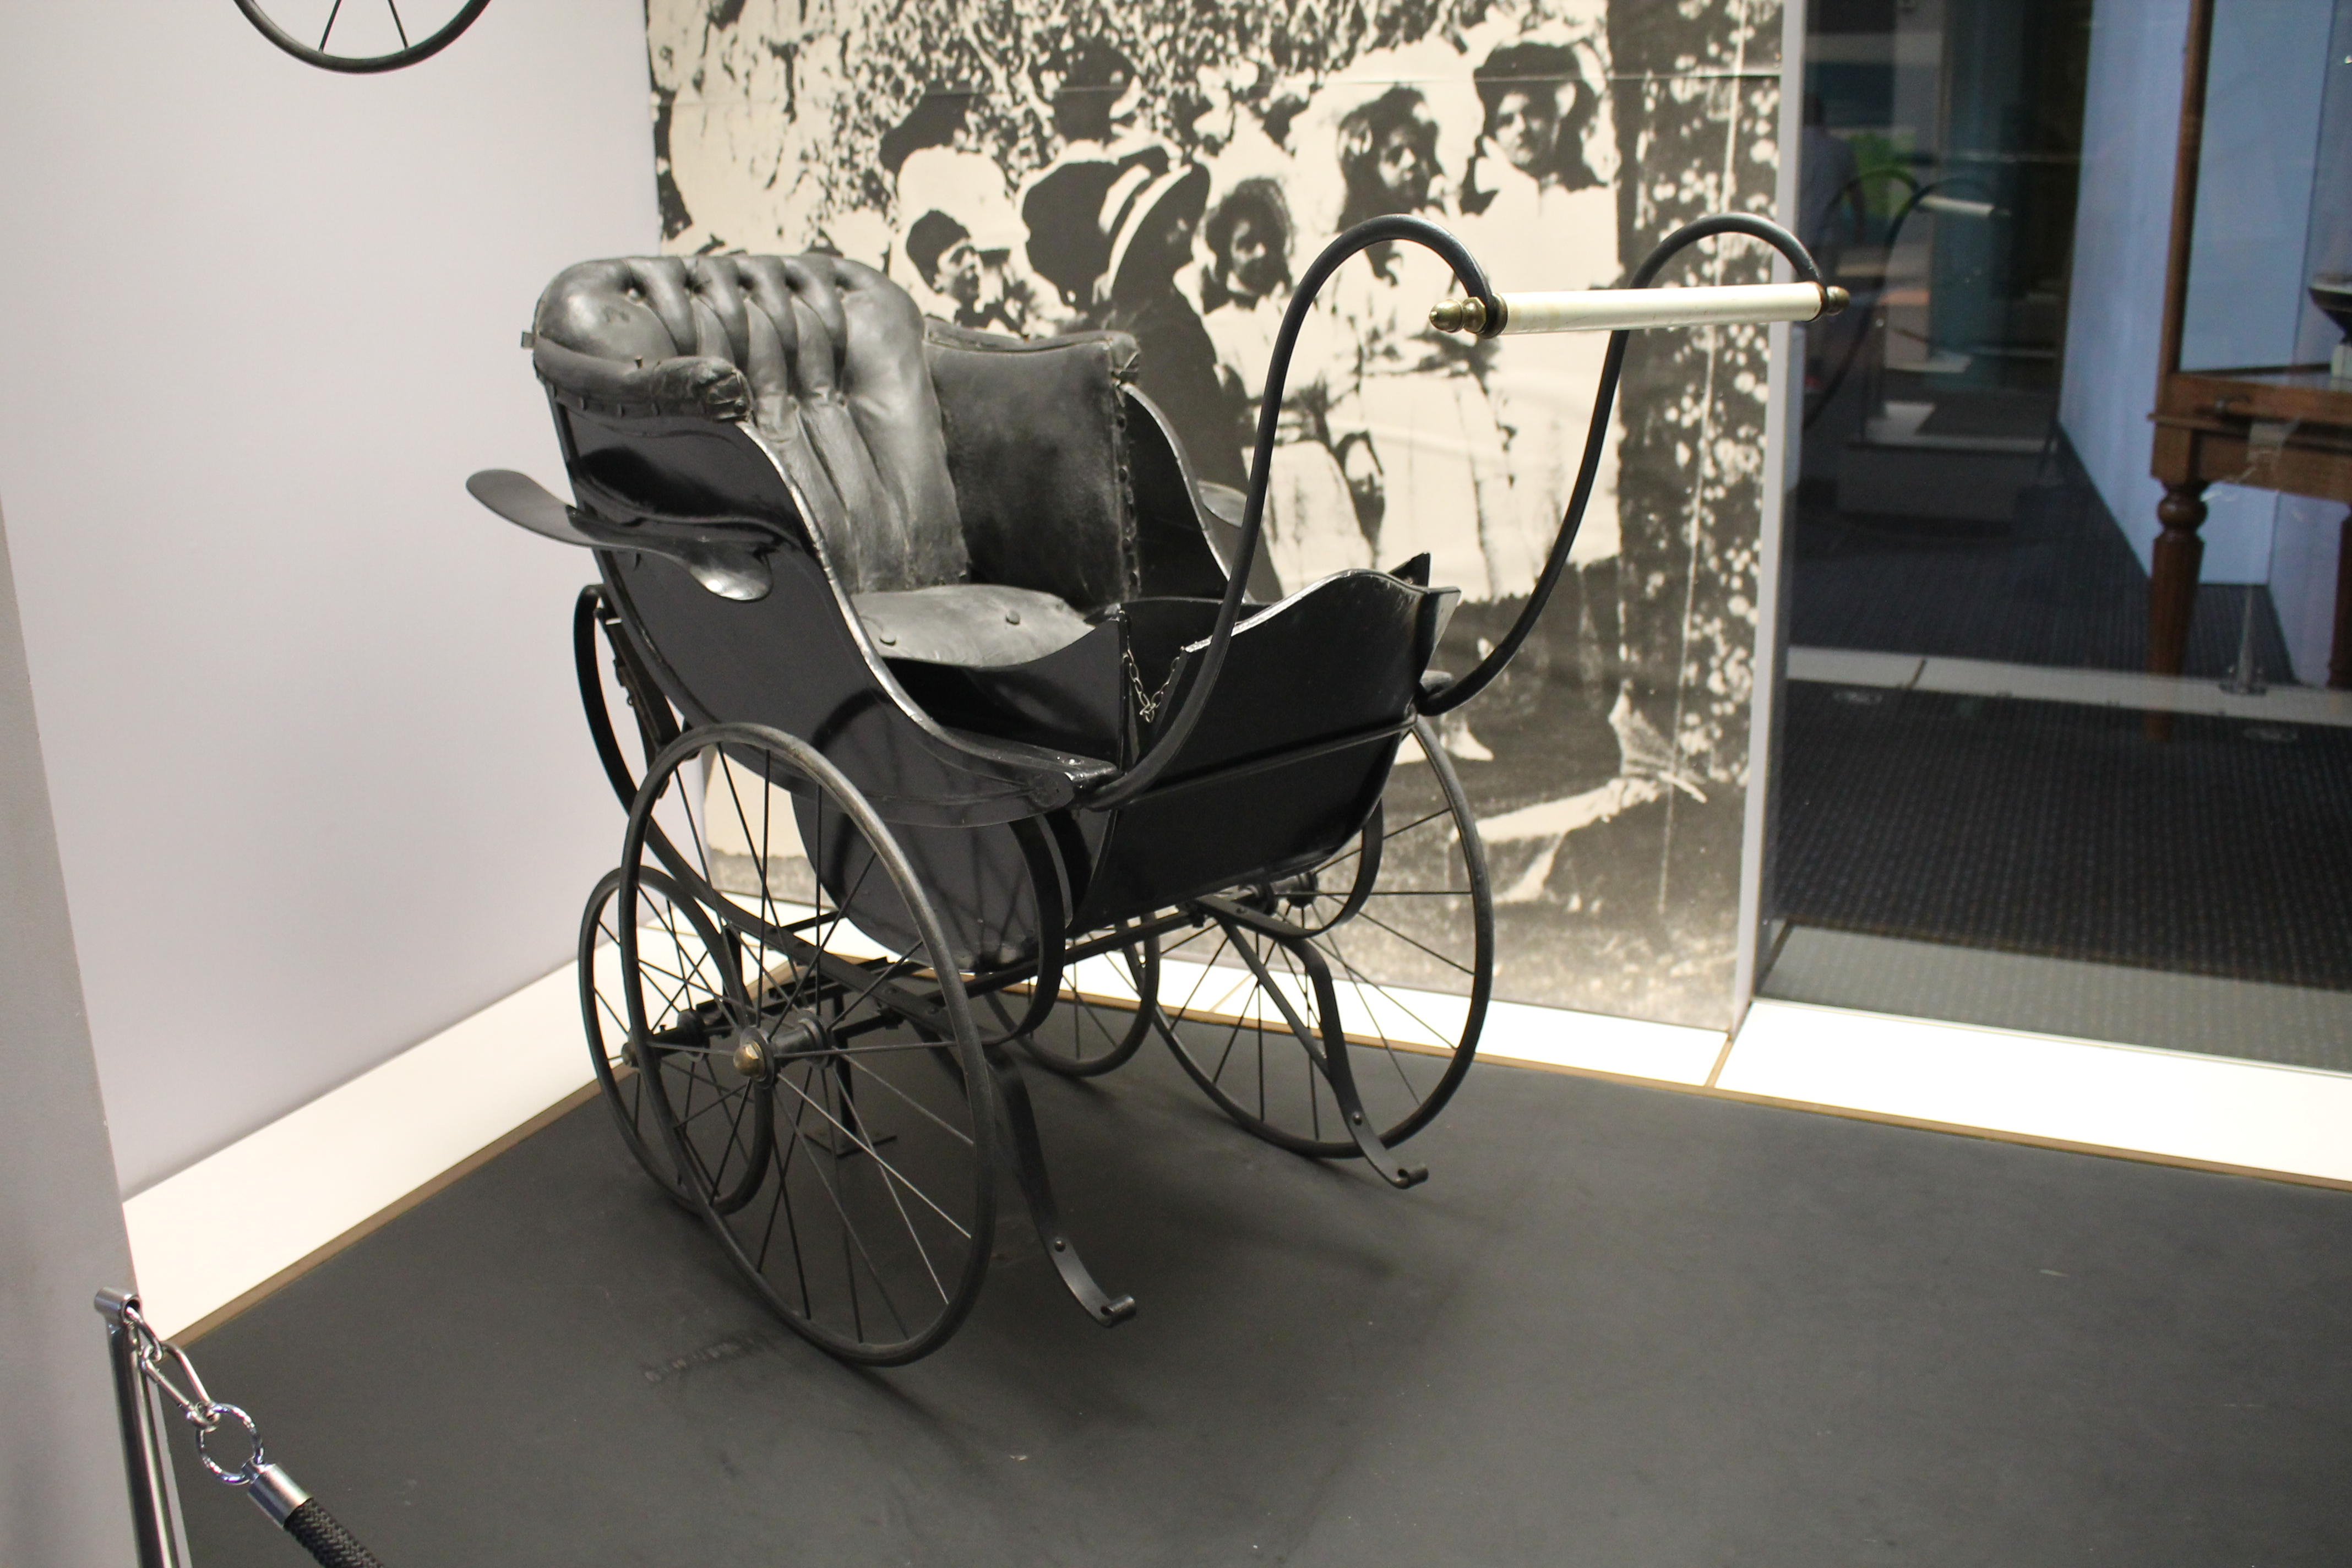 History of the Prams